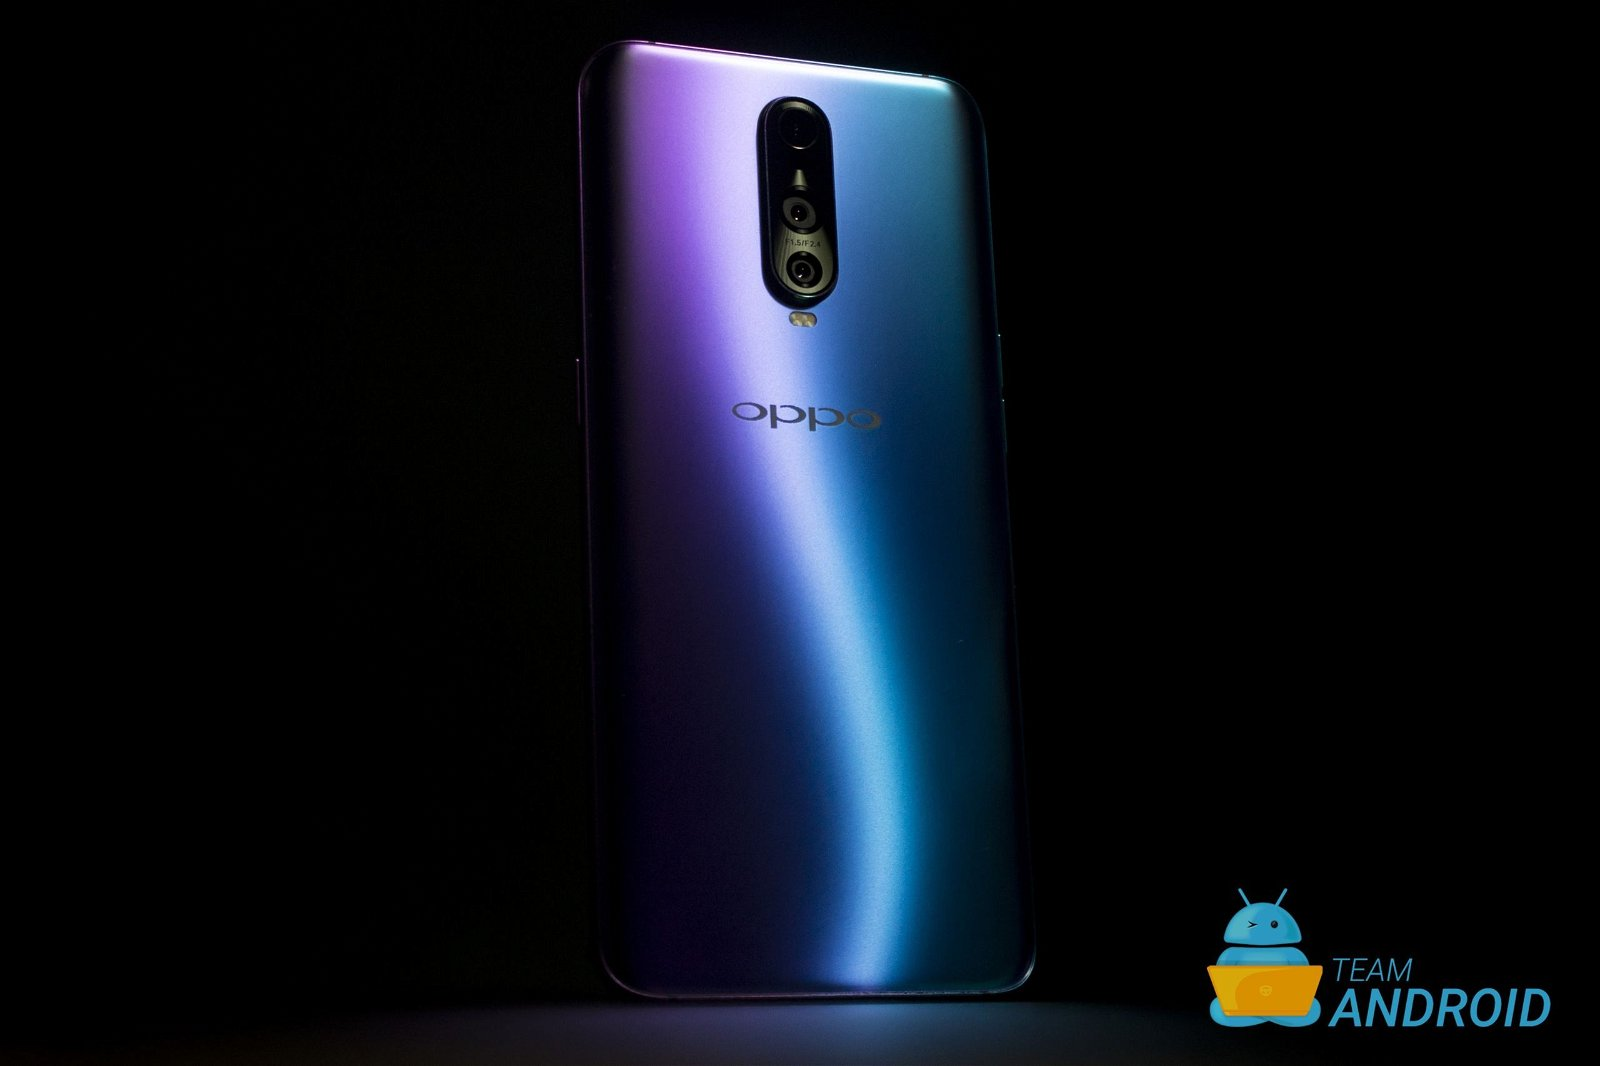 Oppo R17 Pro Review - Beautiful Design with Flagship Hardware 53